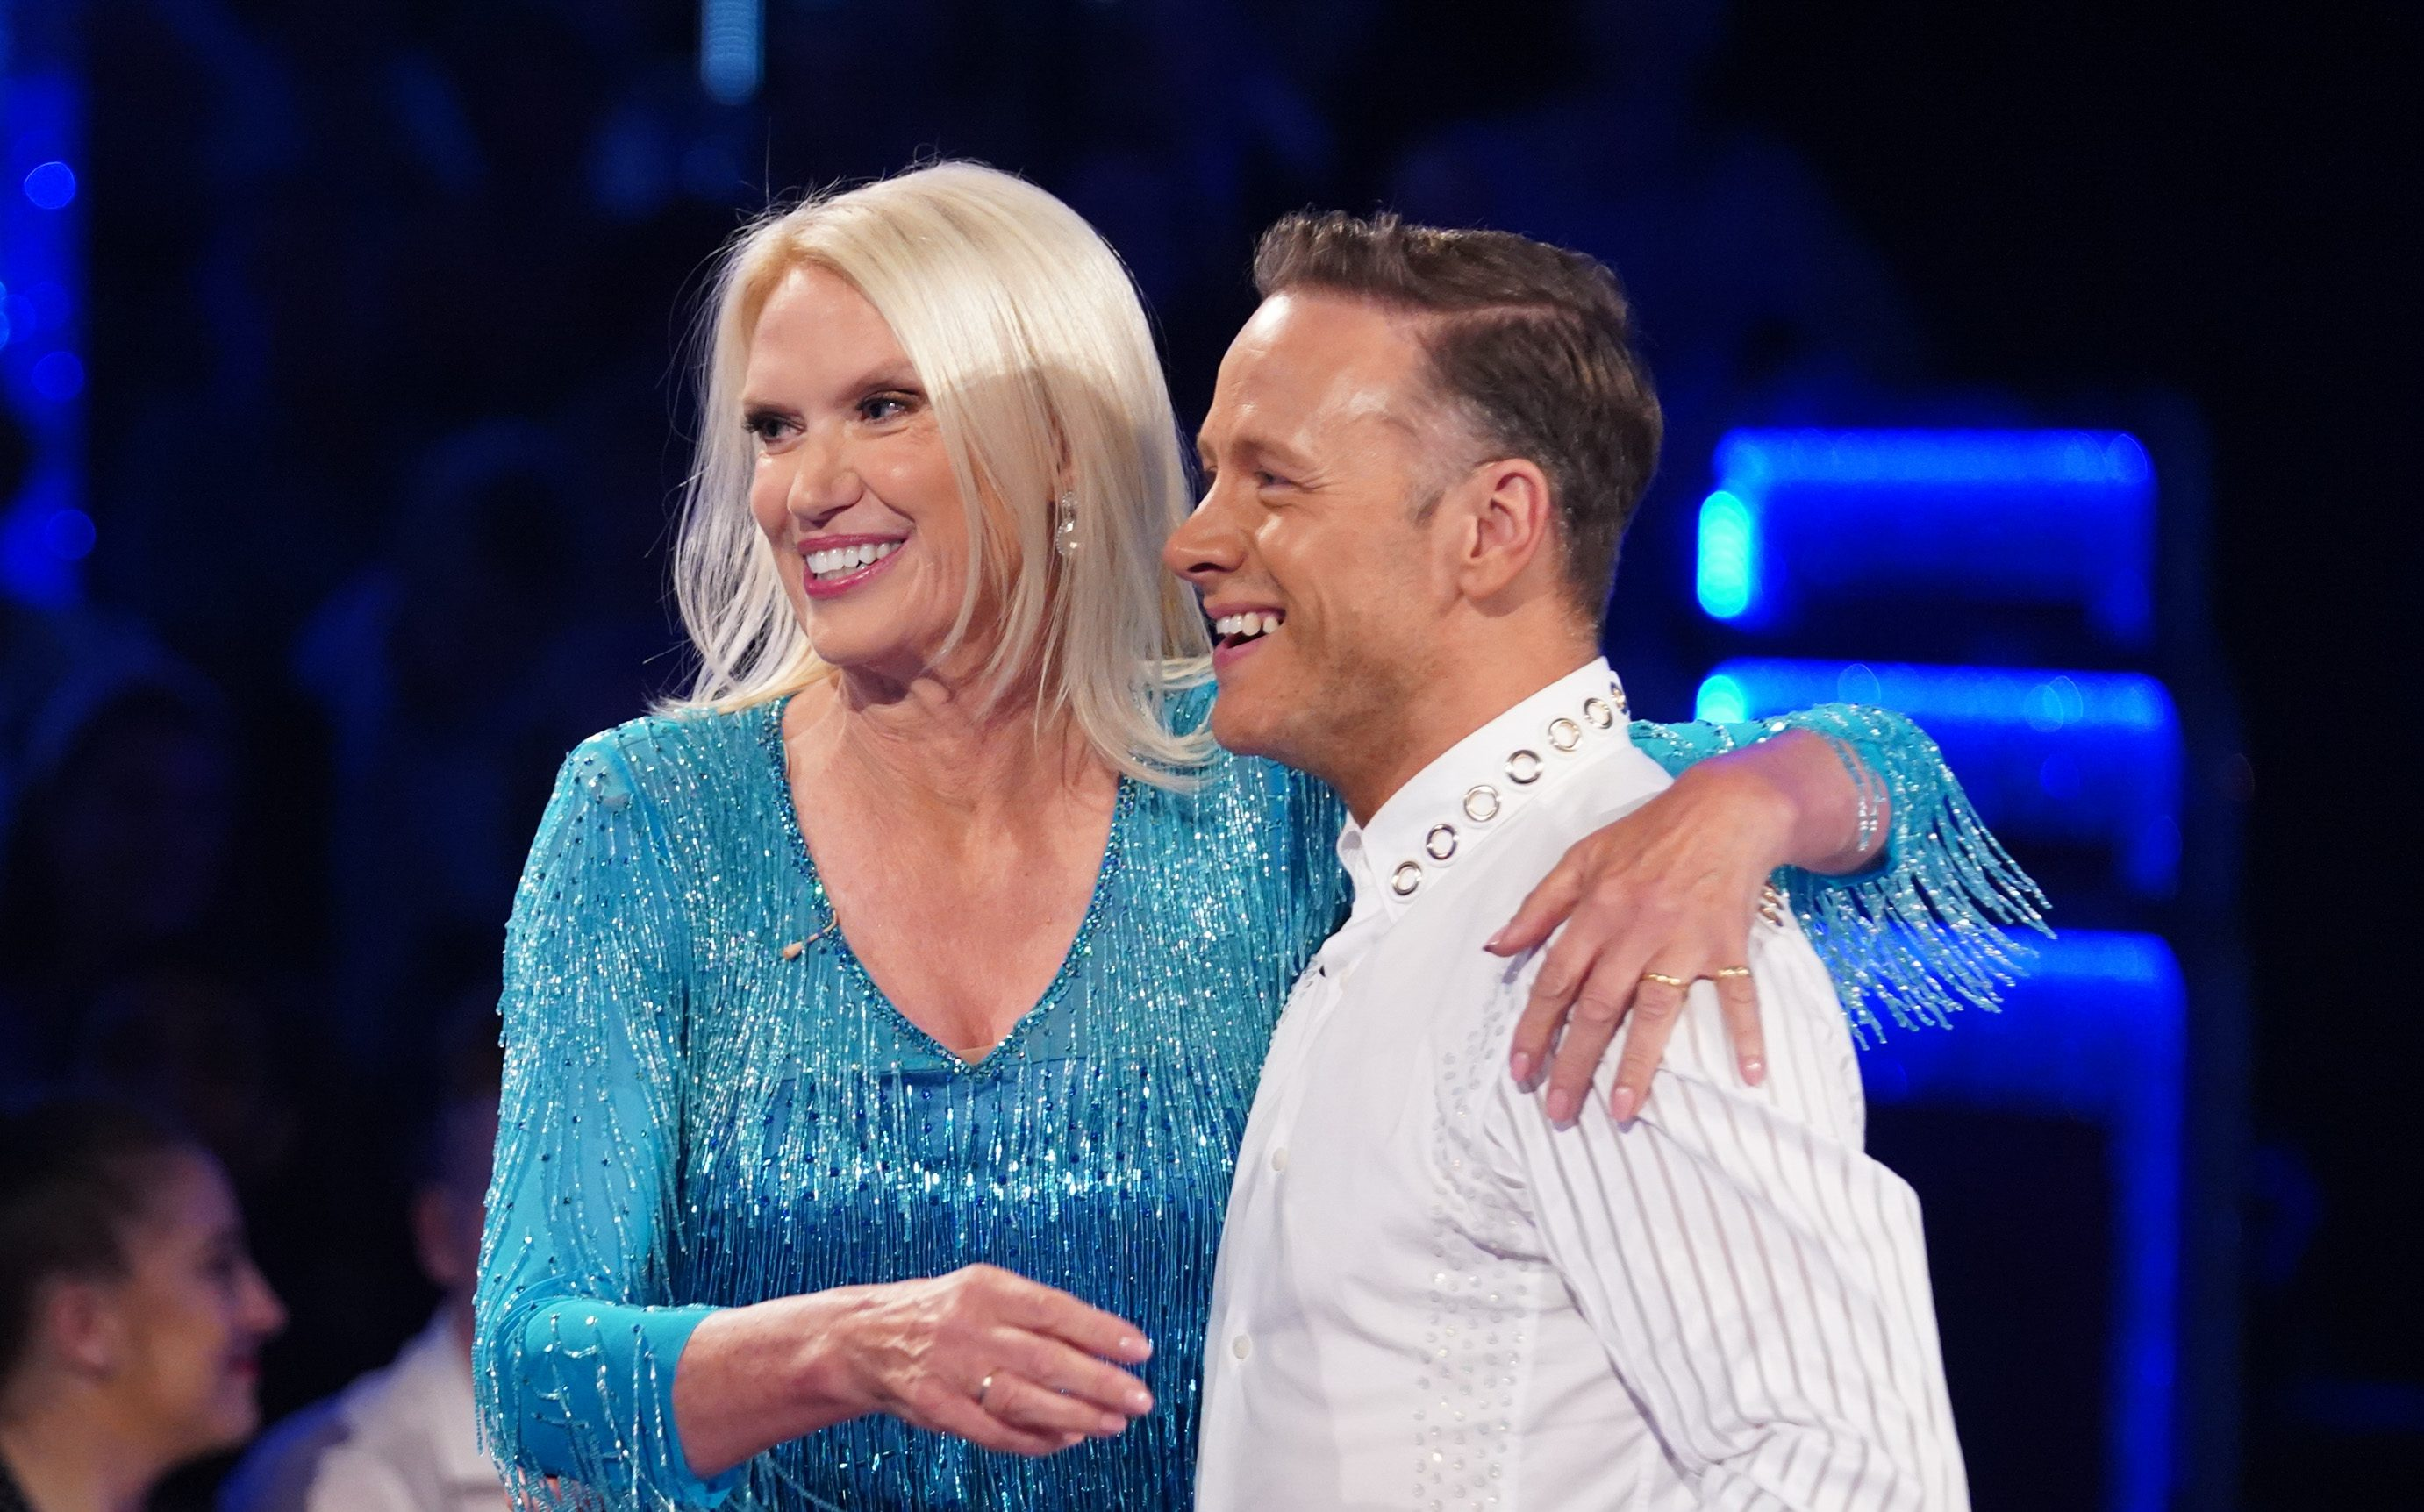 Strictly: Kevin Clifton responds to claims he's 'furious' about Anneka Rice pairing